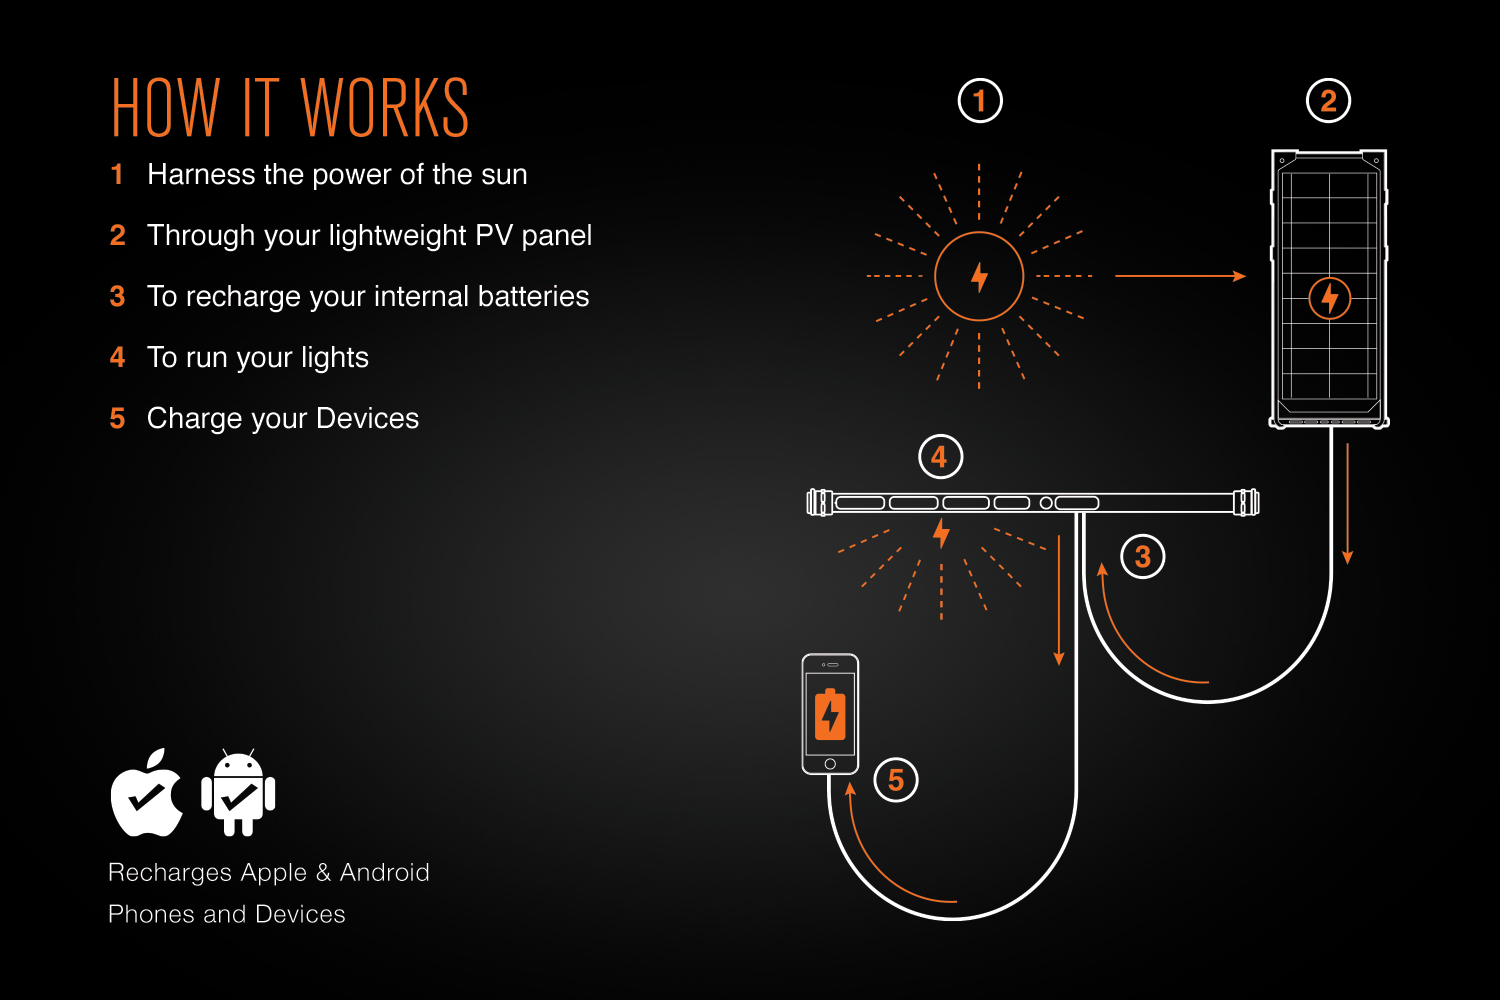 Bright-Beam-products-how-it-works.jpg